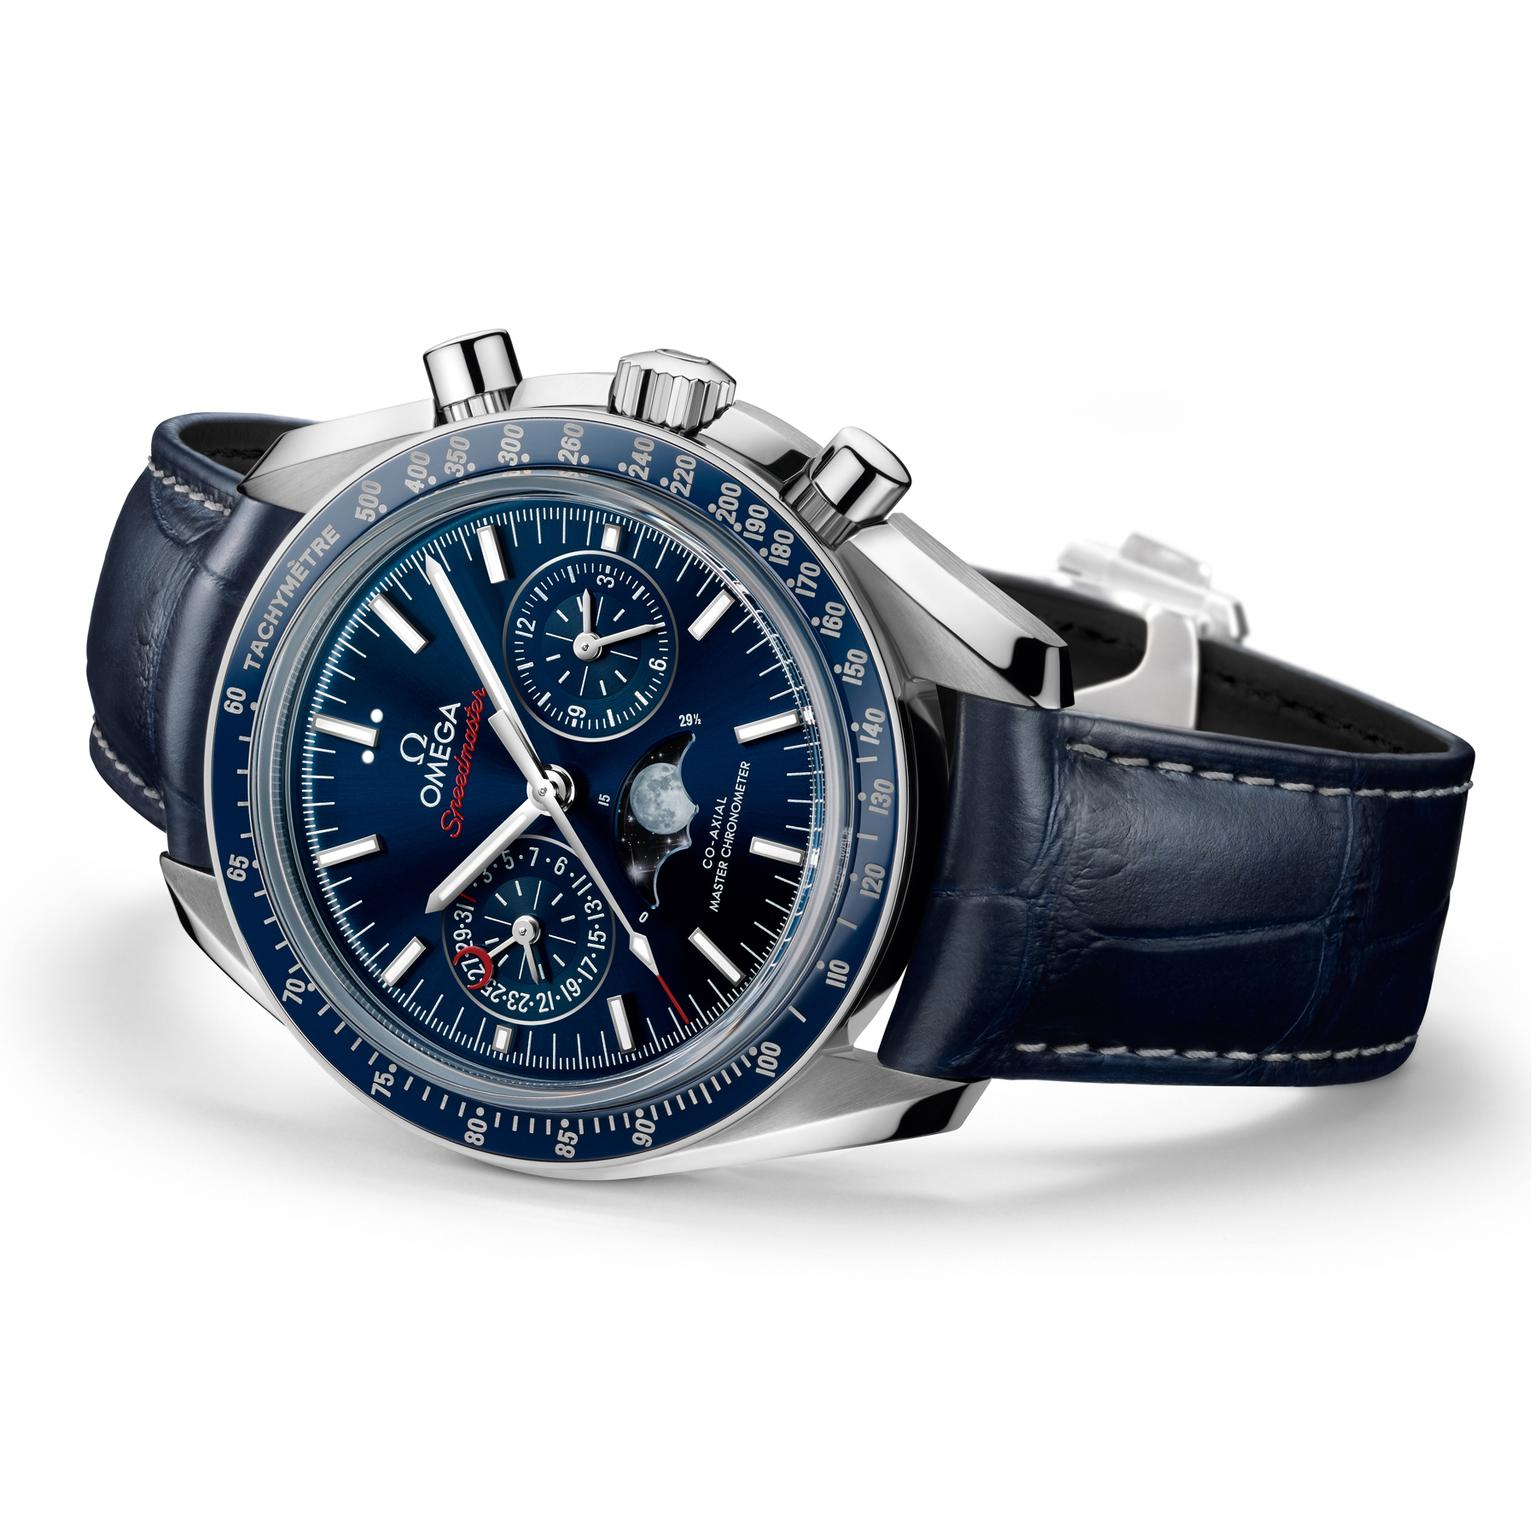 Omega Speedmaster Chronograph Master Moonphase watch